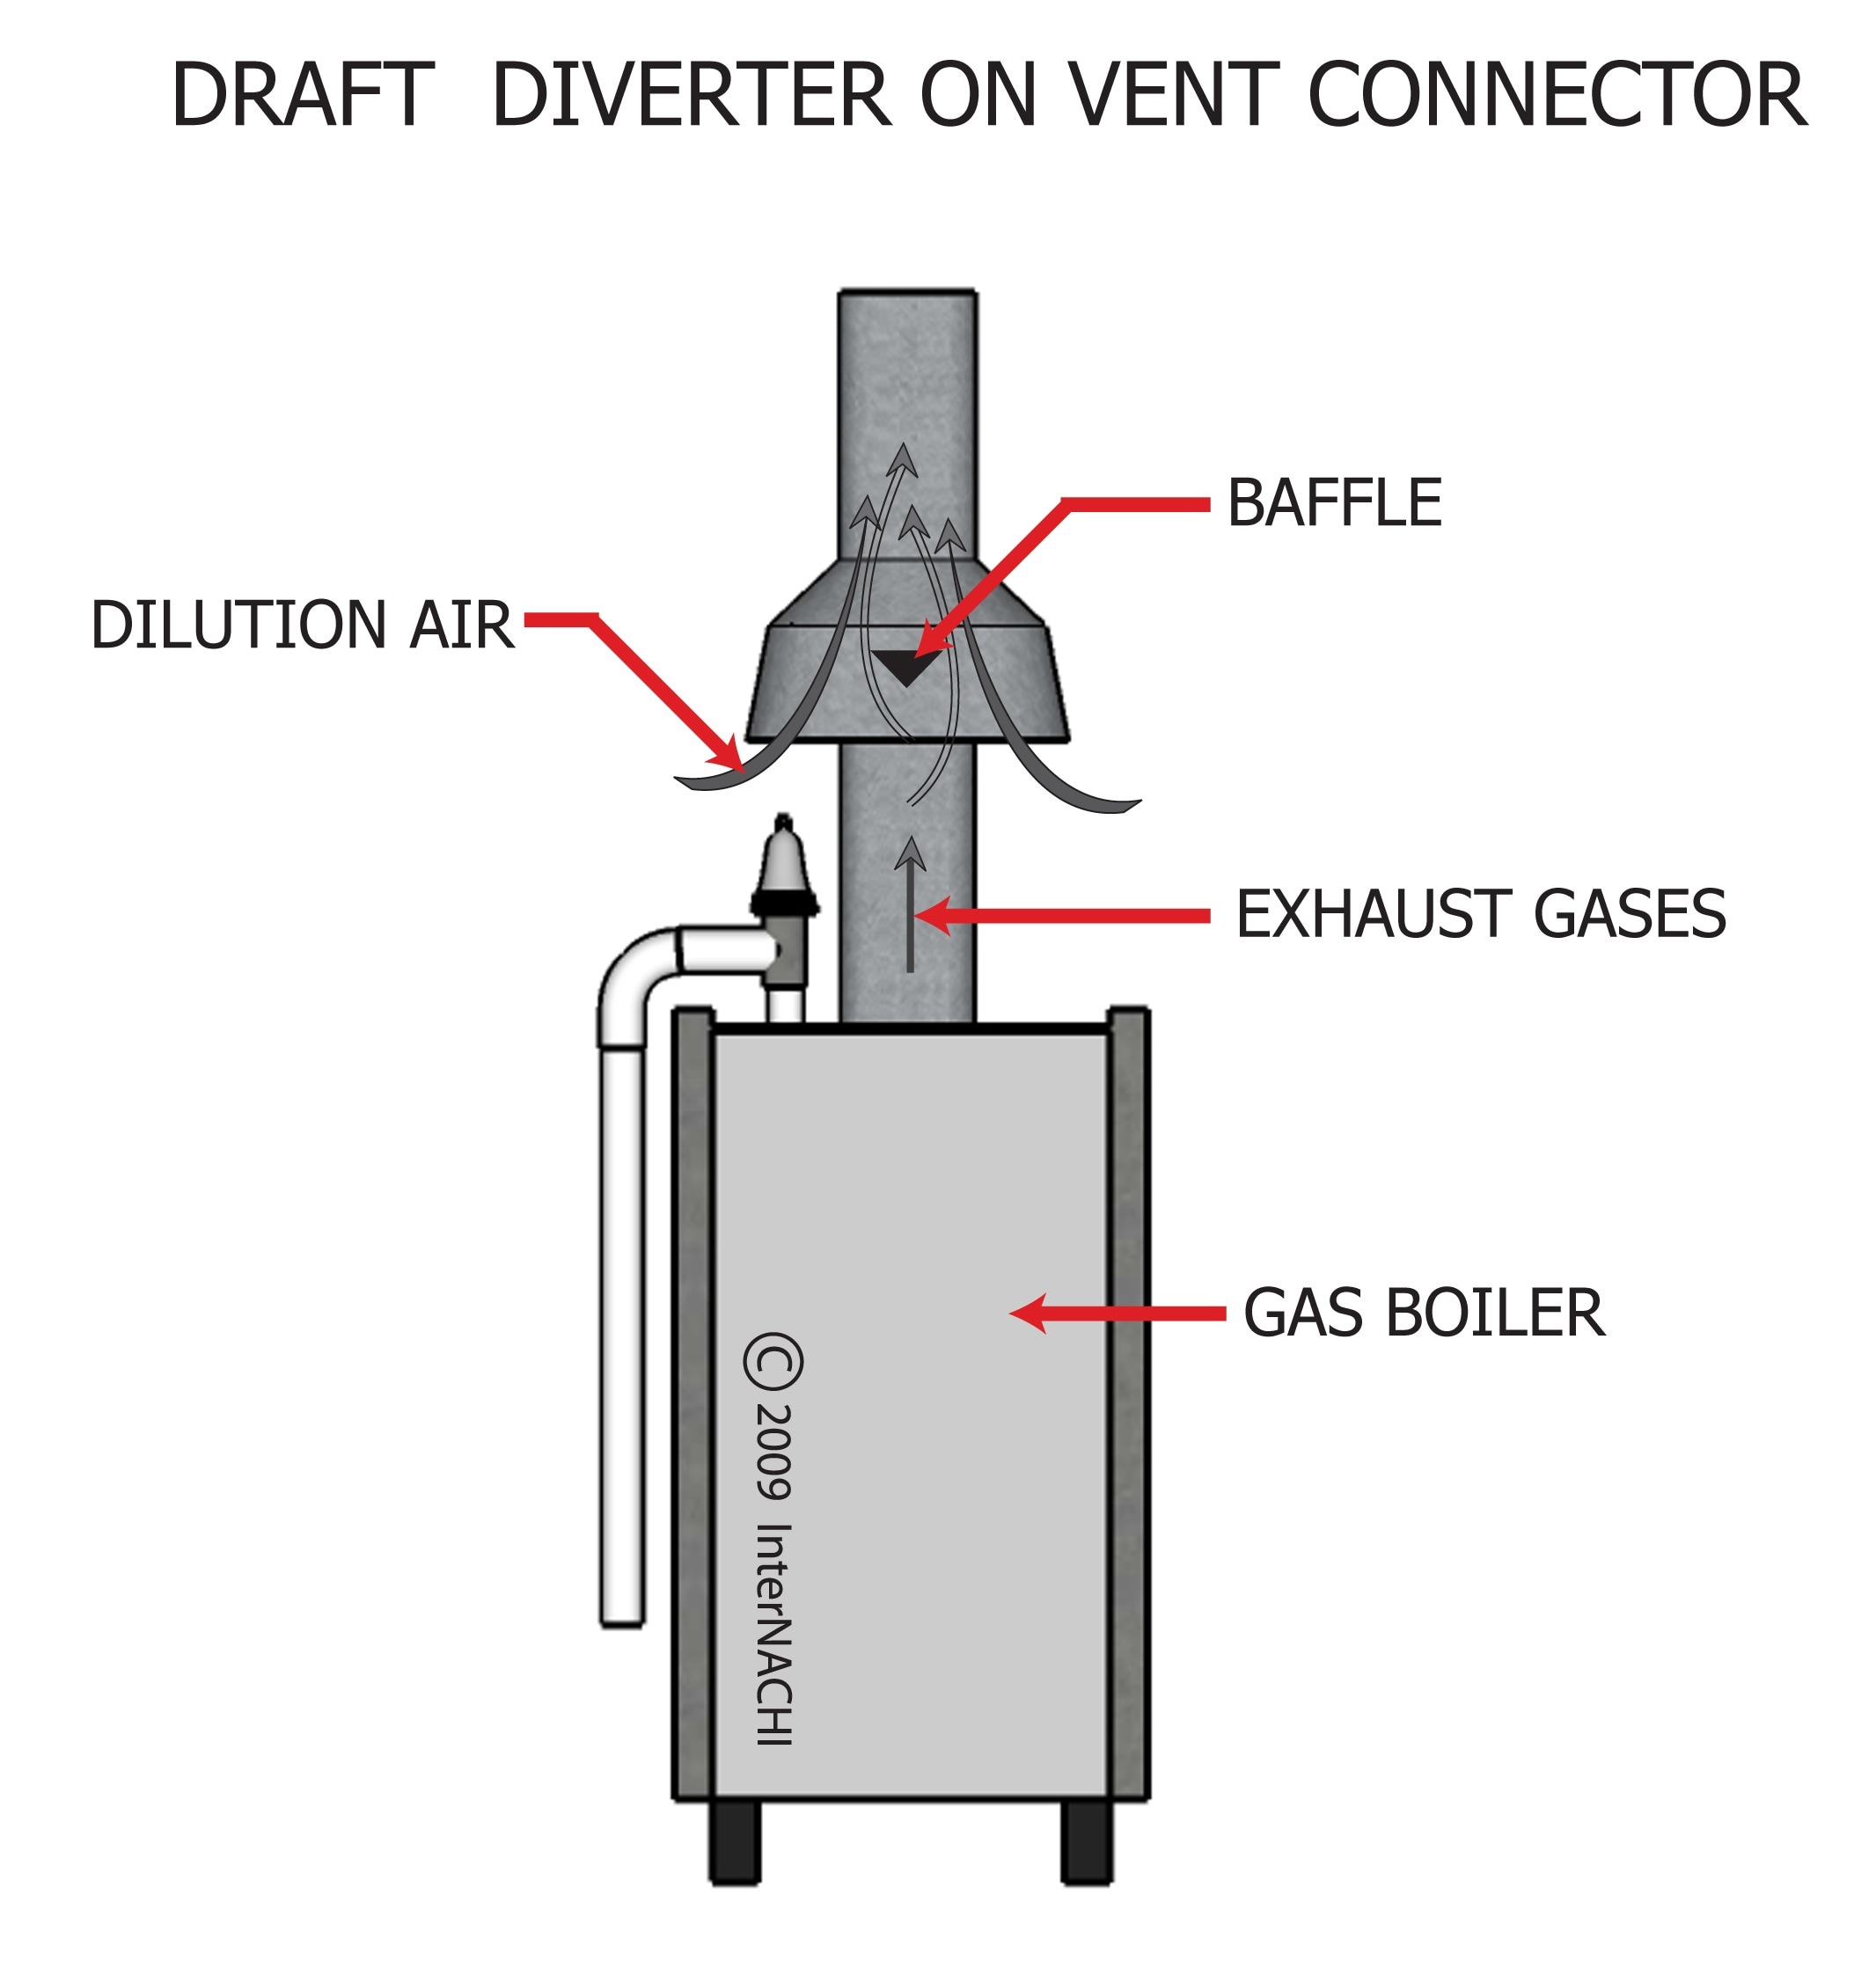 Draft diverter on vent connector.